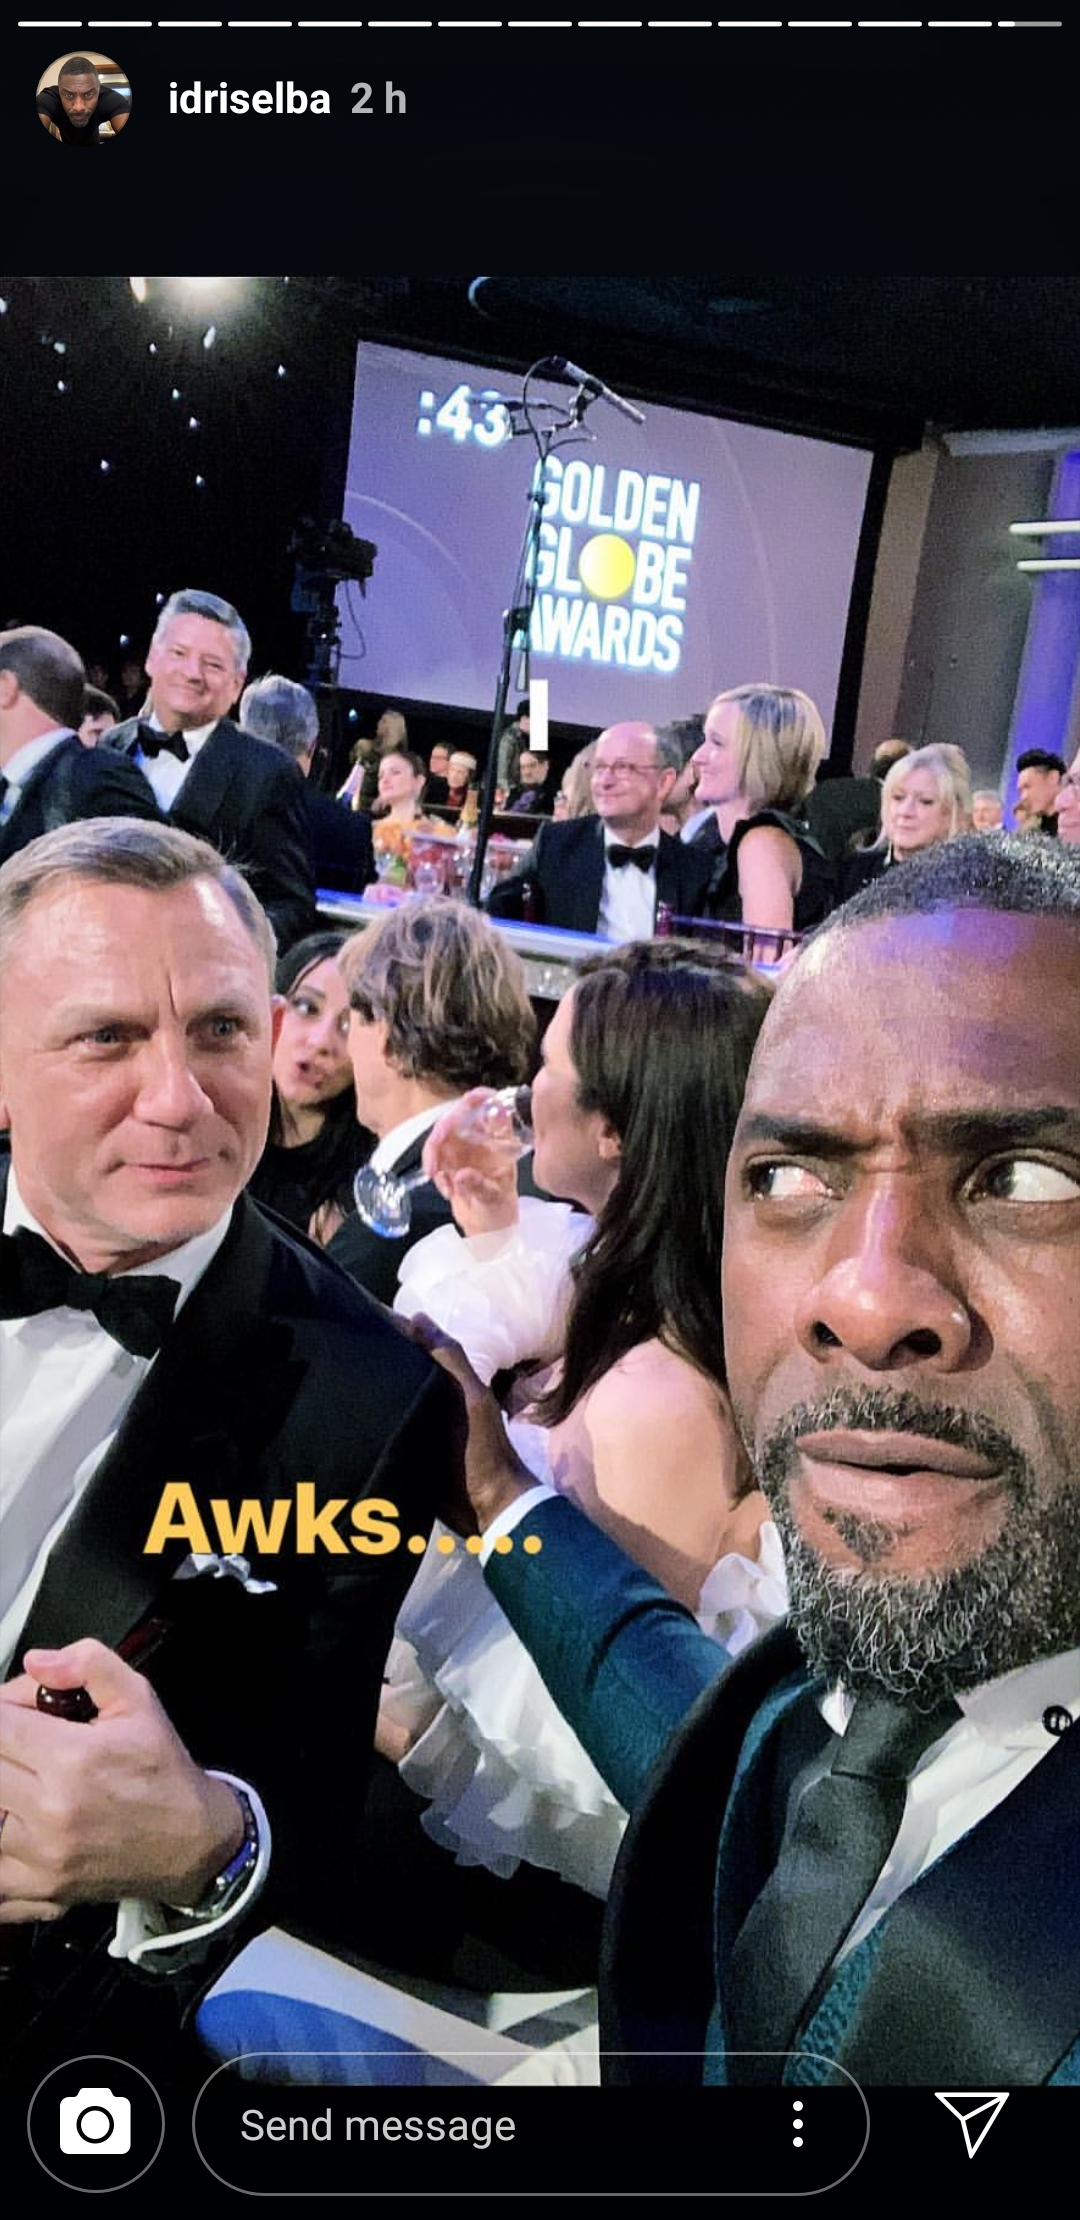 Idris Elba and Daniel Craig